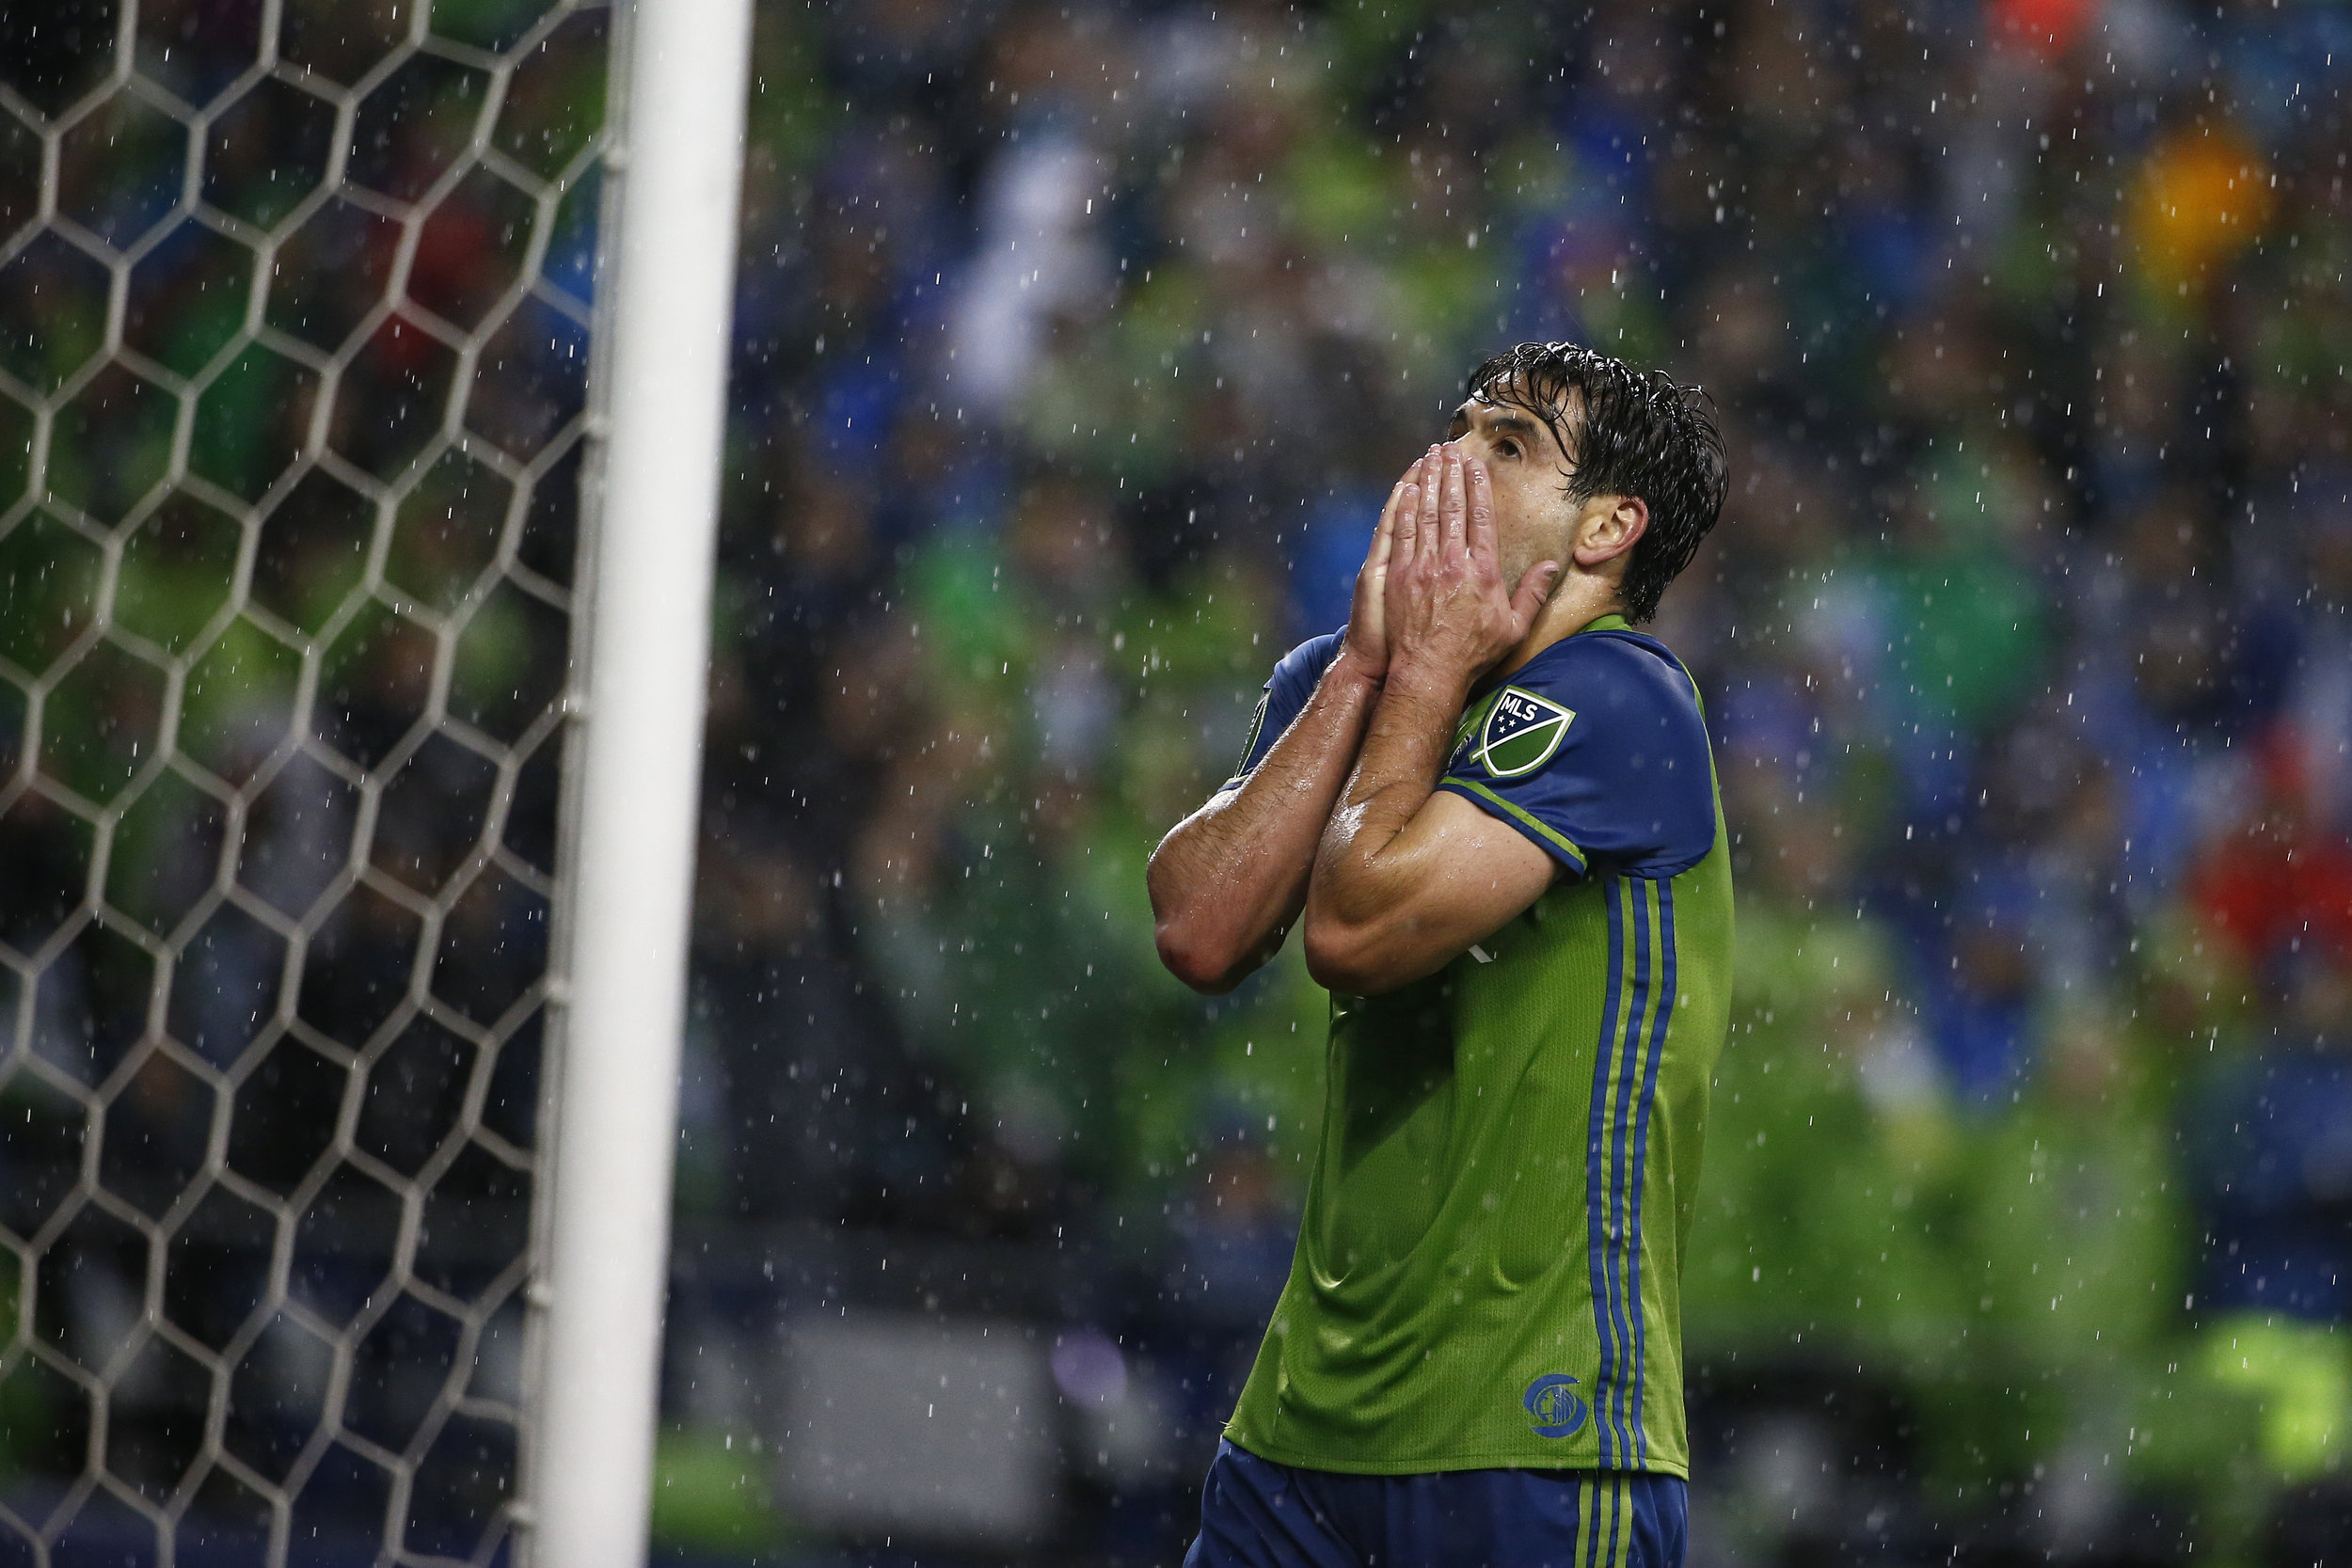 Seattle Sounders midfielder Nicolas Lodeiro (10) reacts after a near miss in the second half of their MLS Western Conference Final game against the Colorado Rapids at CenturyLink Field on Tuesday, November 22, 2016.